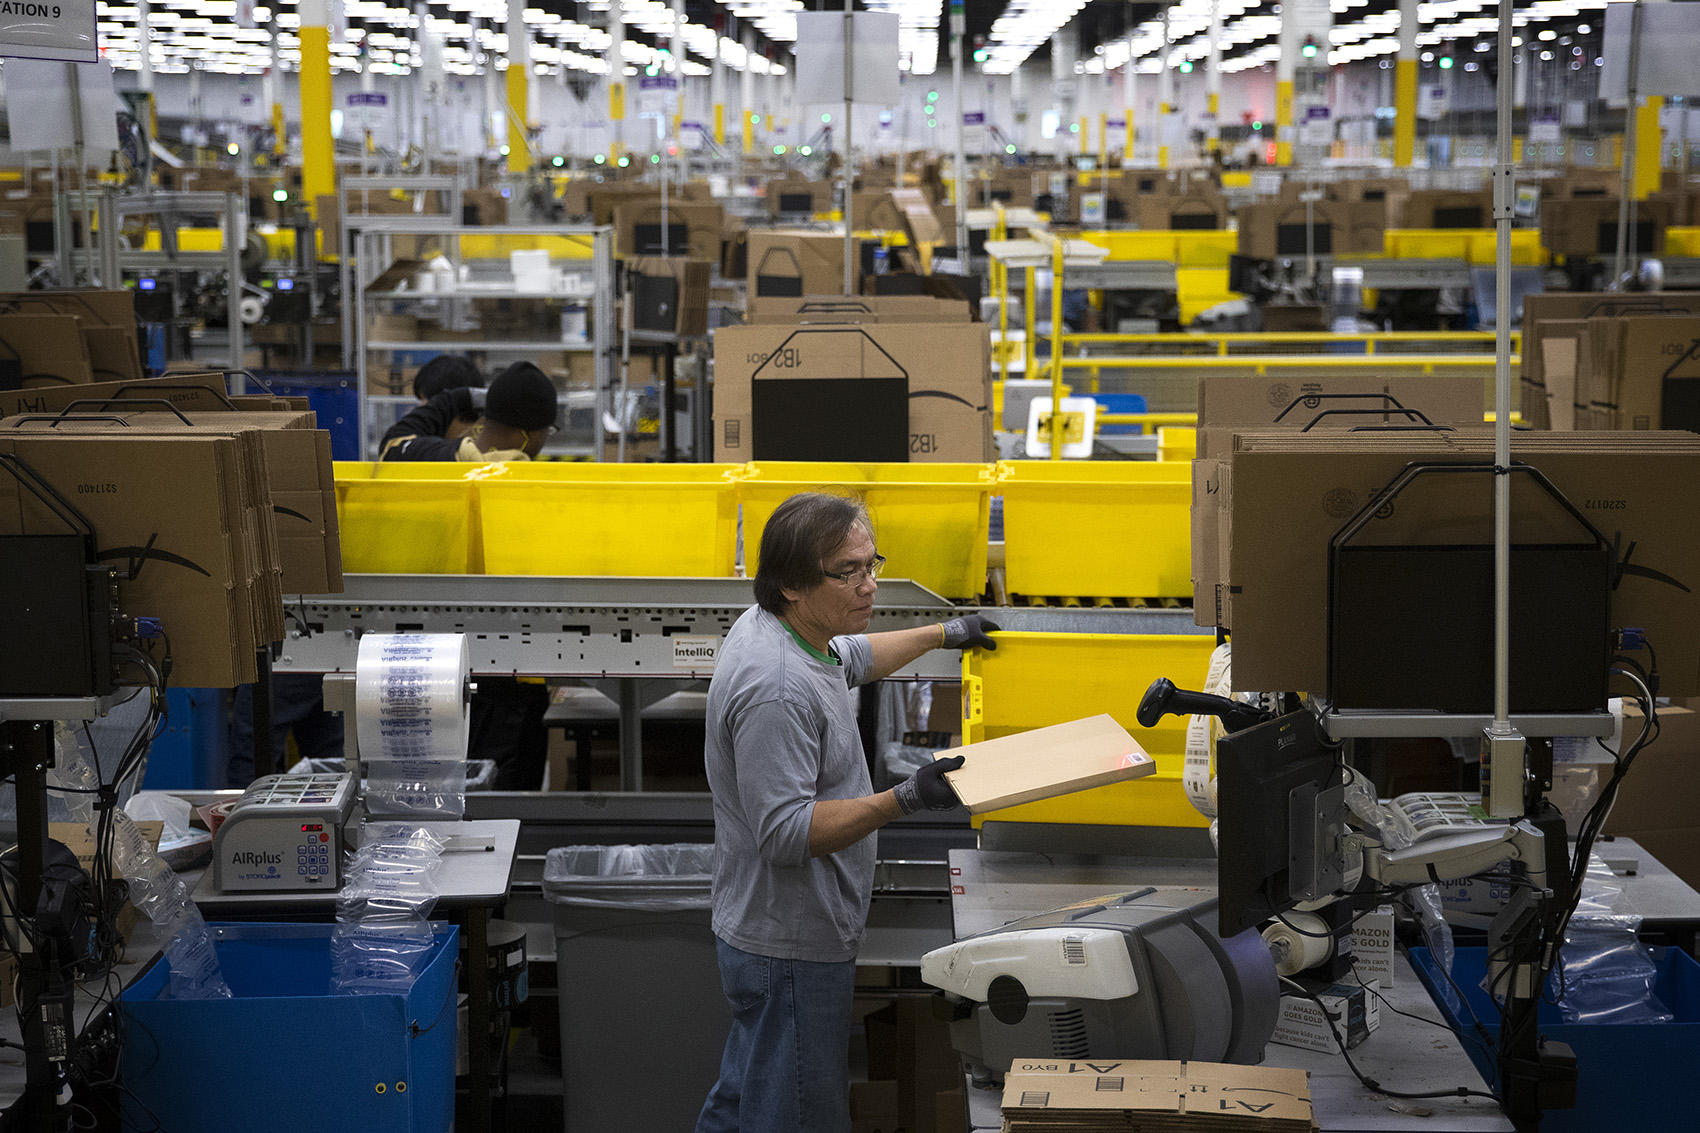 As robots take on more work, Amazon invests in warehouse